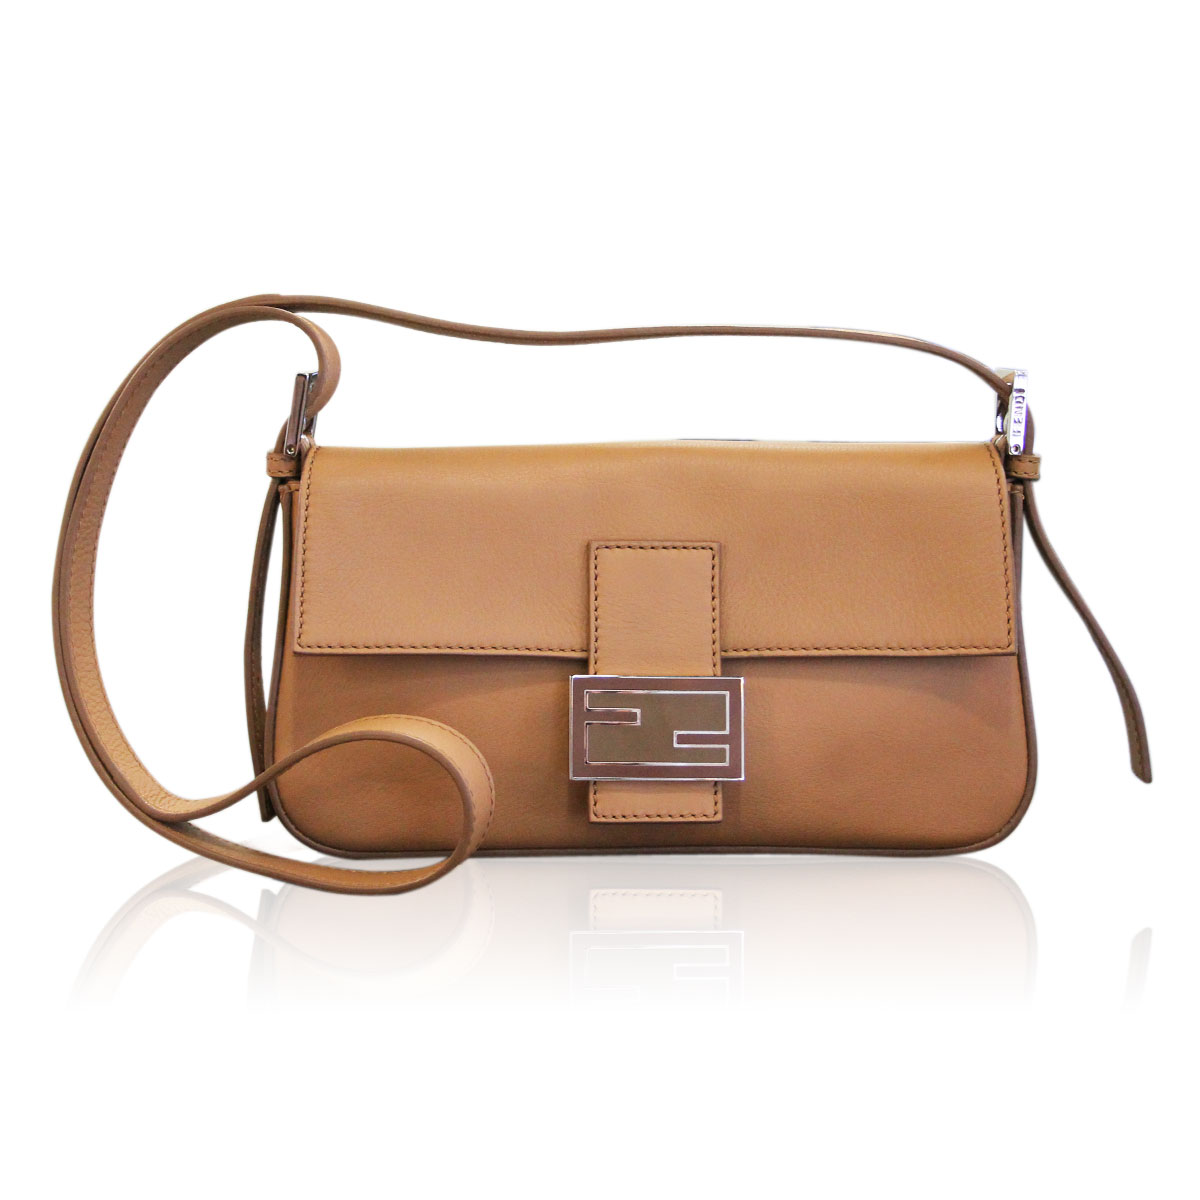 Fendi Barley Leather Baguette Shoulder Bag Cross Body